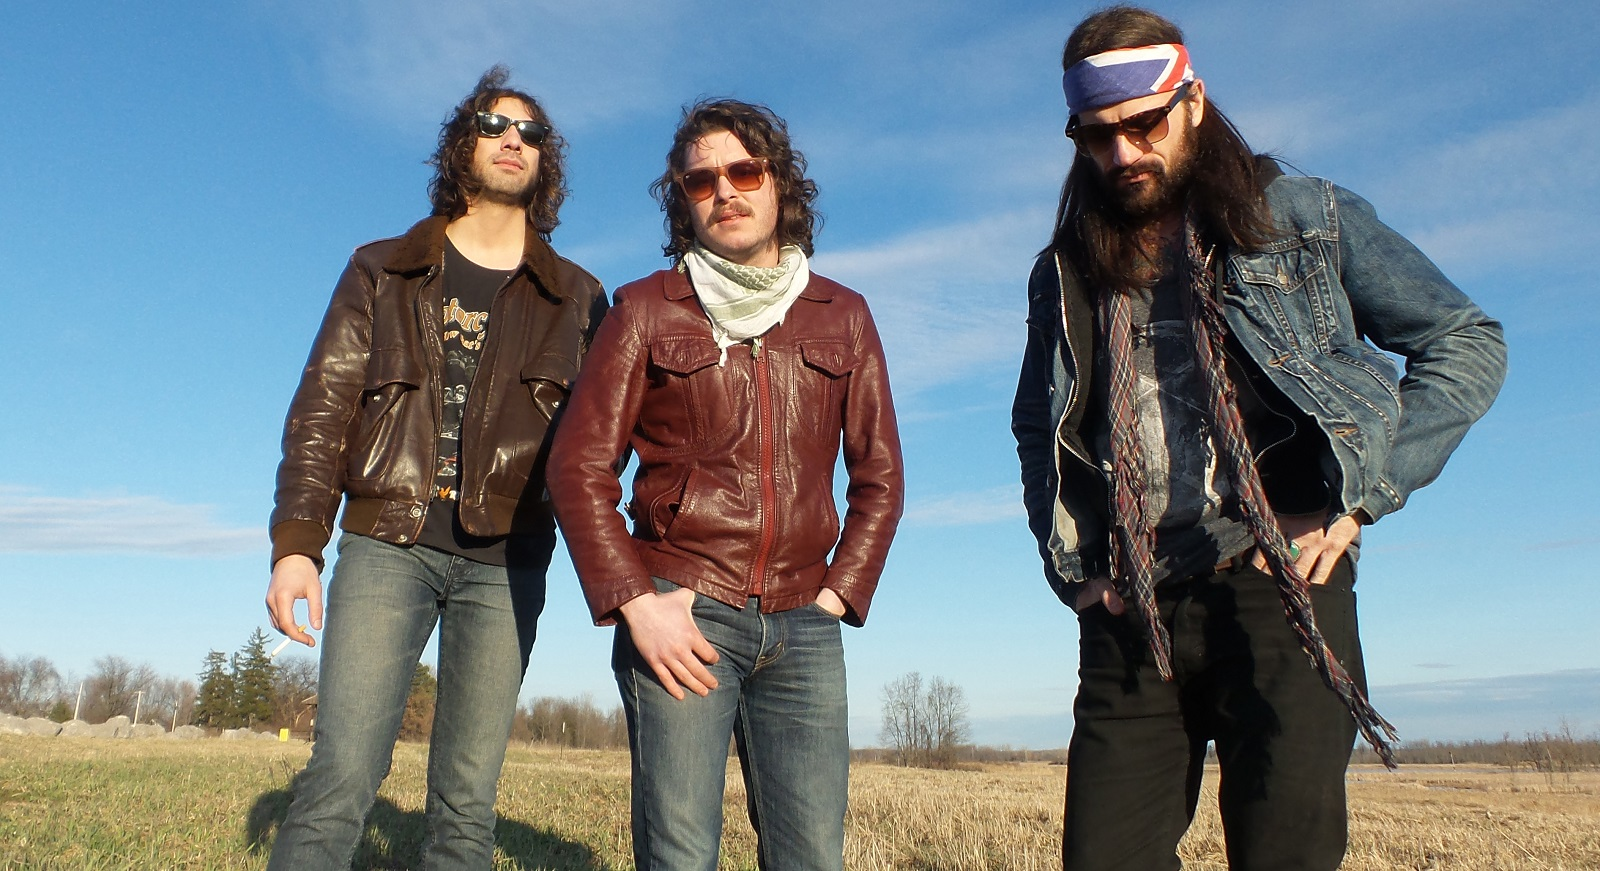 Handsome Jack will open for Hamilton's Monster Truck at Town Ballroom on May 28.